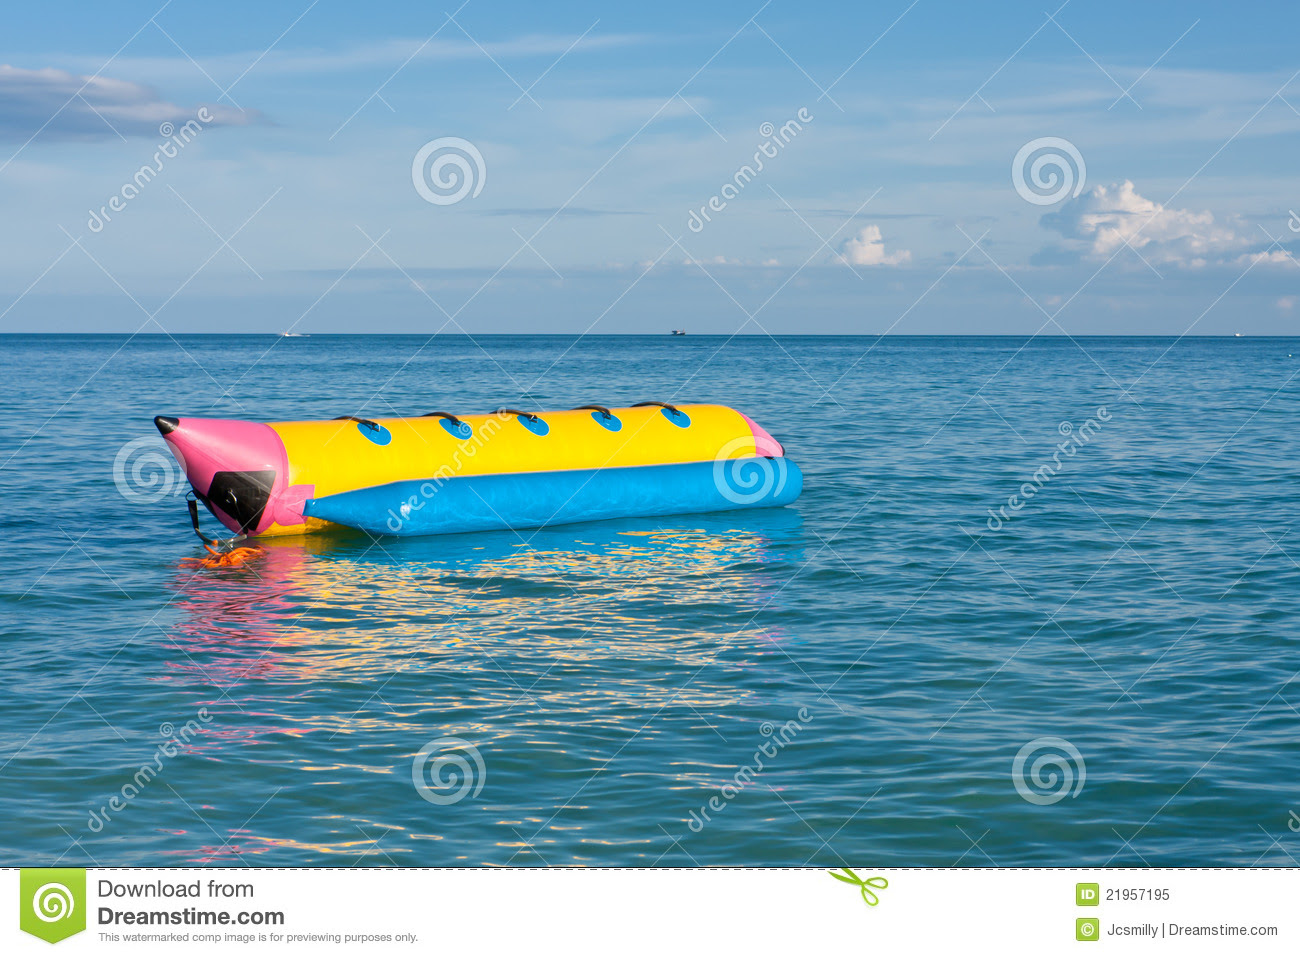 Banana Boat In The Sea Royalty Free Stock Photo - Image: 21957195